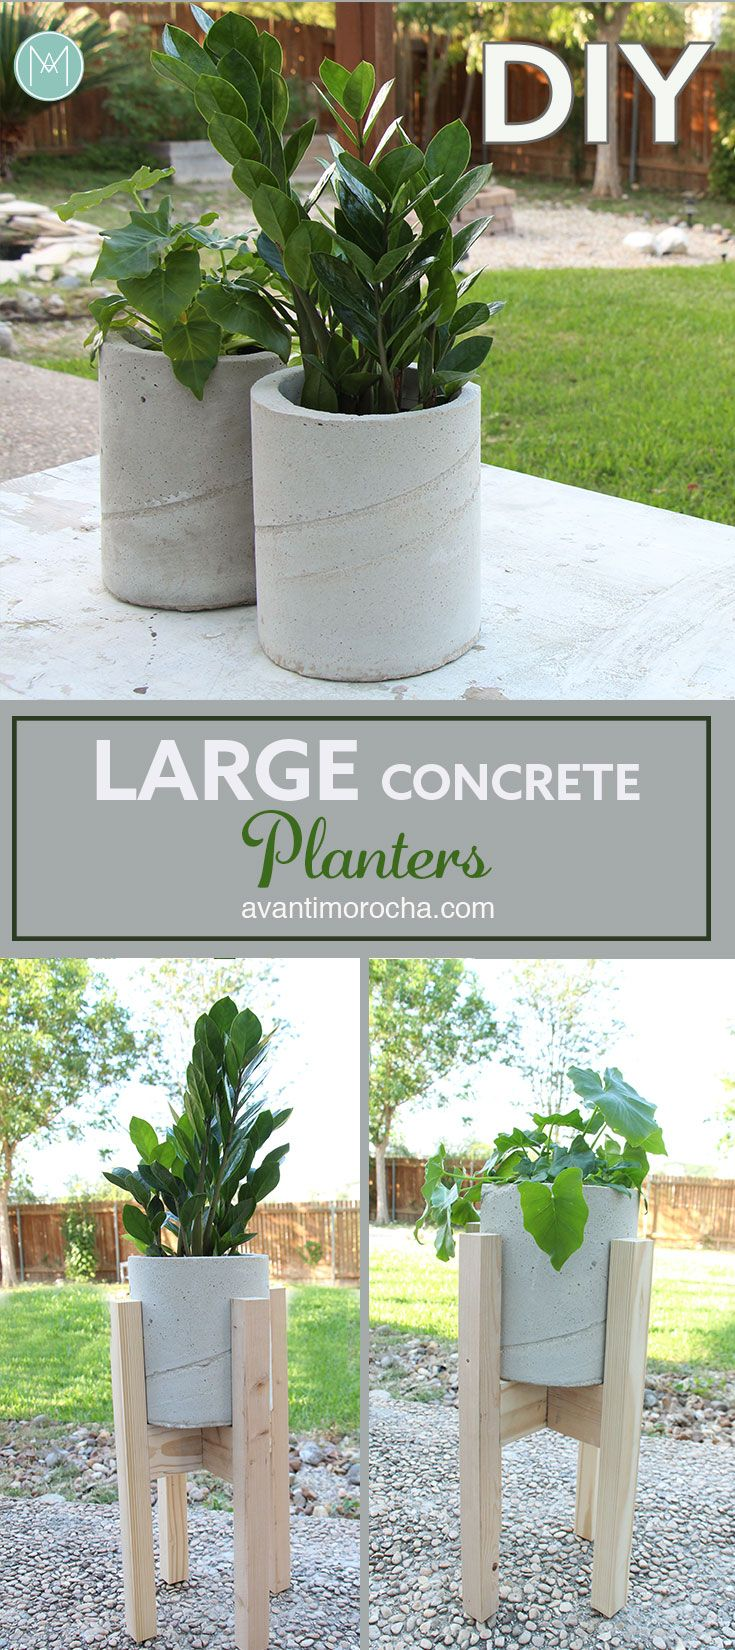 DIY Large Concrete Planters | Maceteros de Concreto | Cement | Cemento | Industrial Design